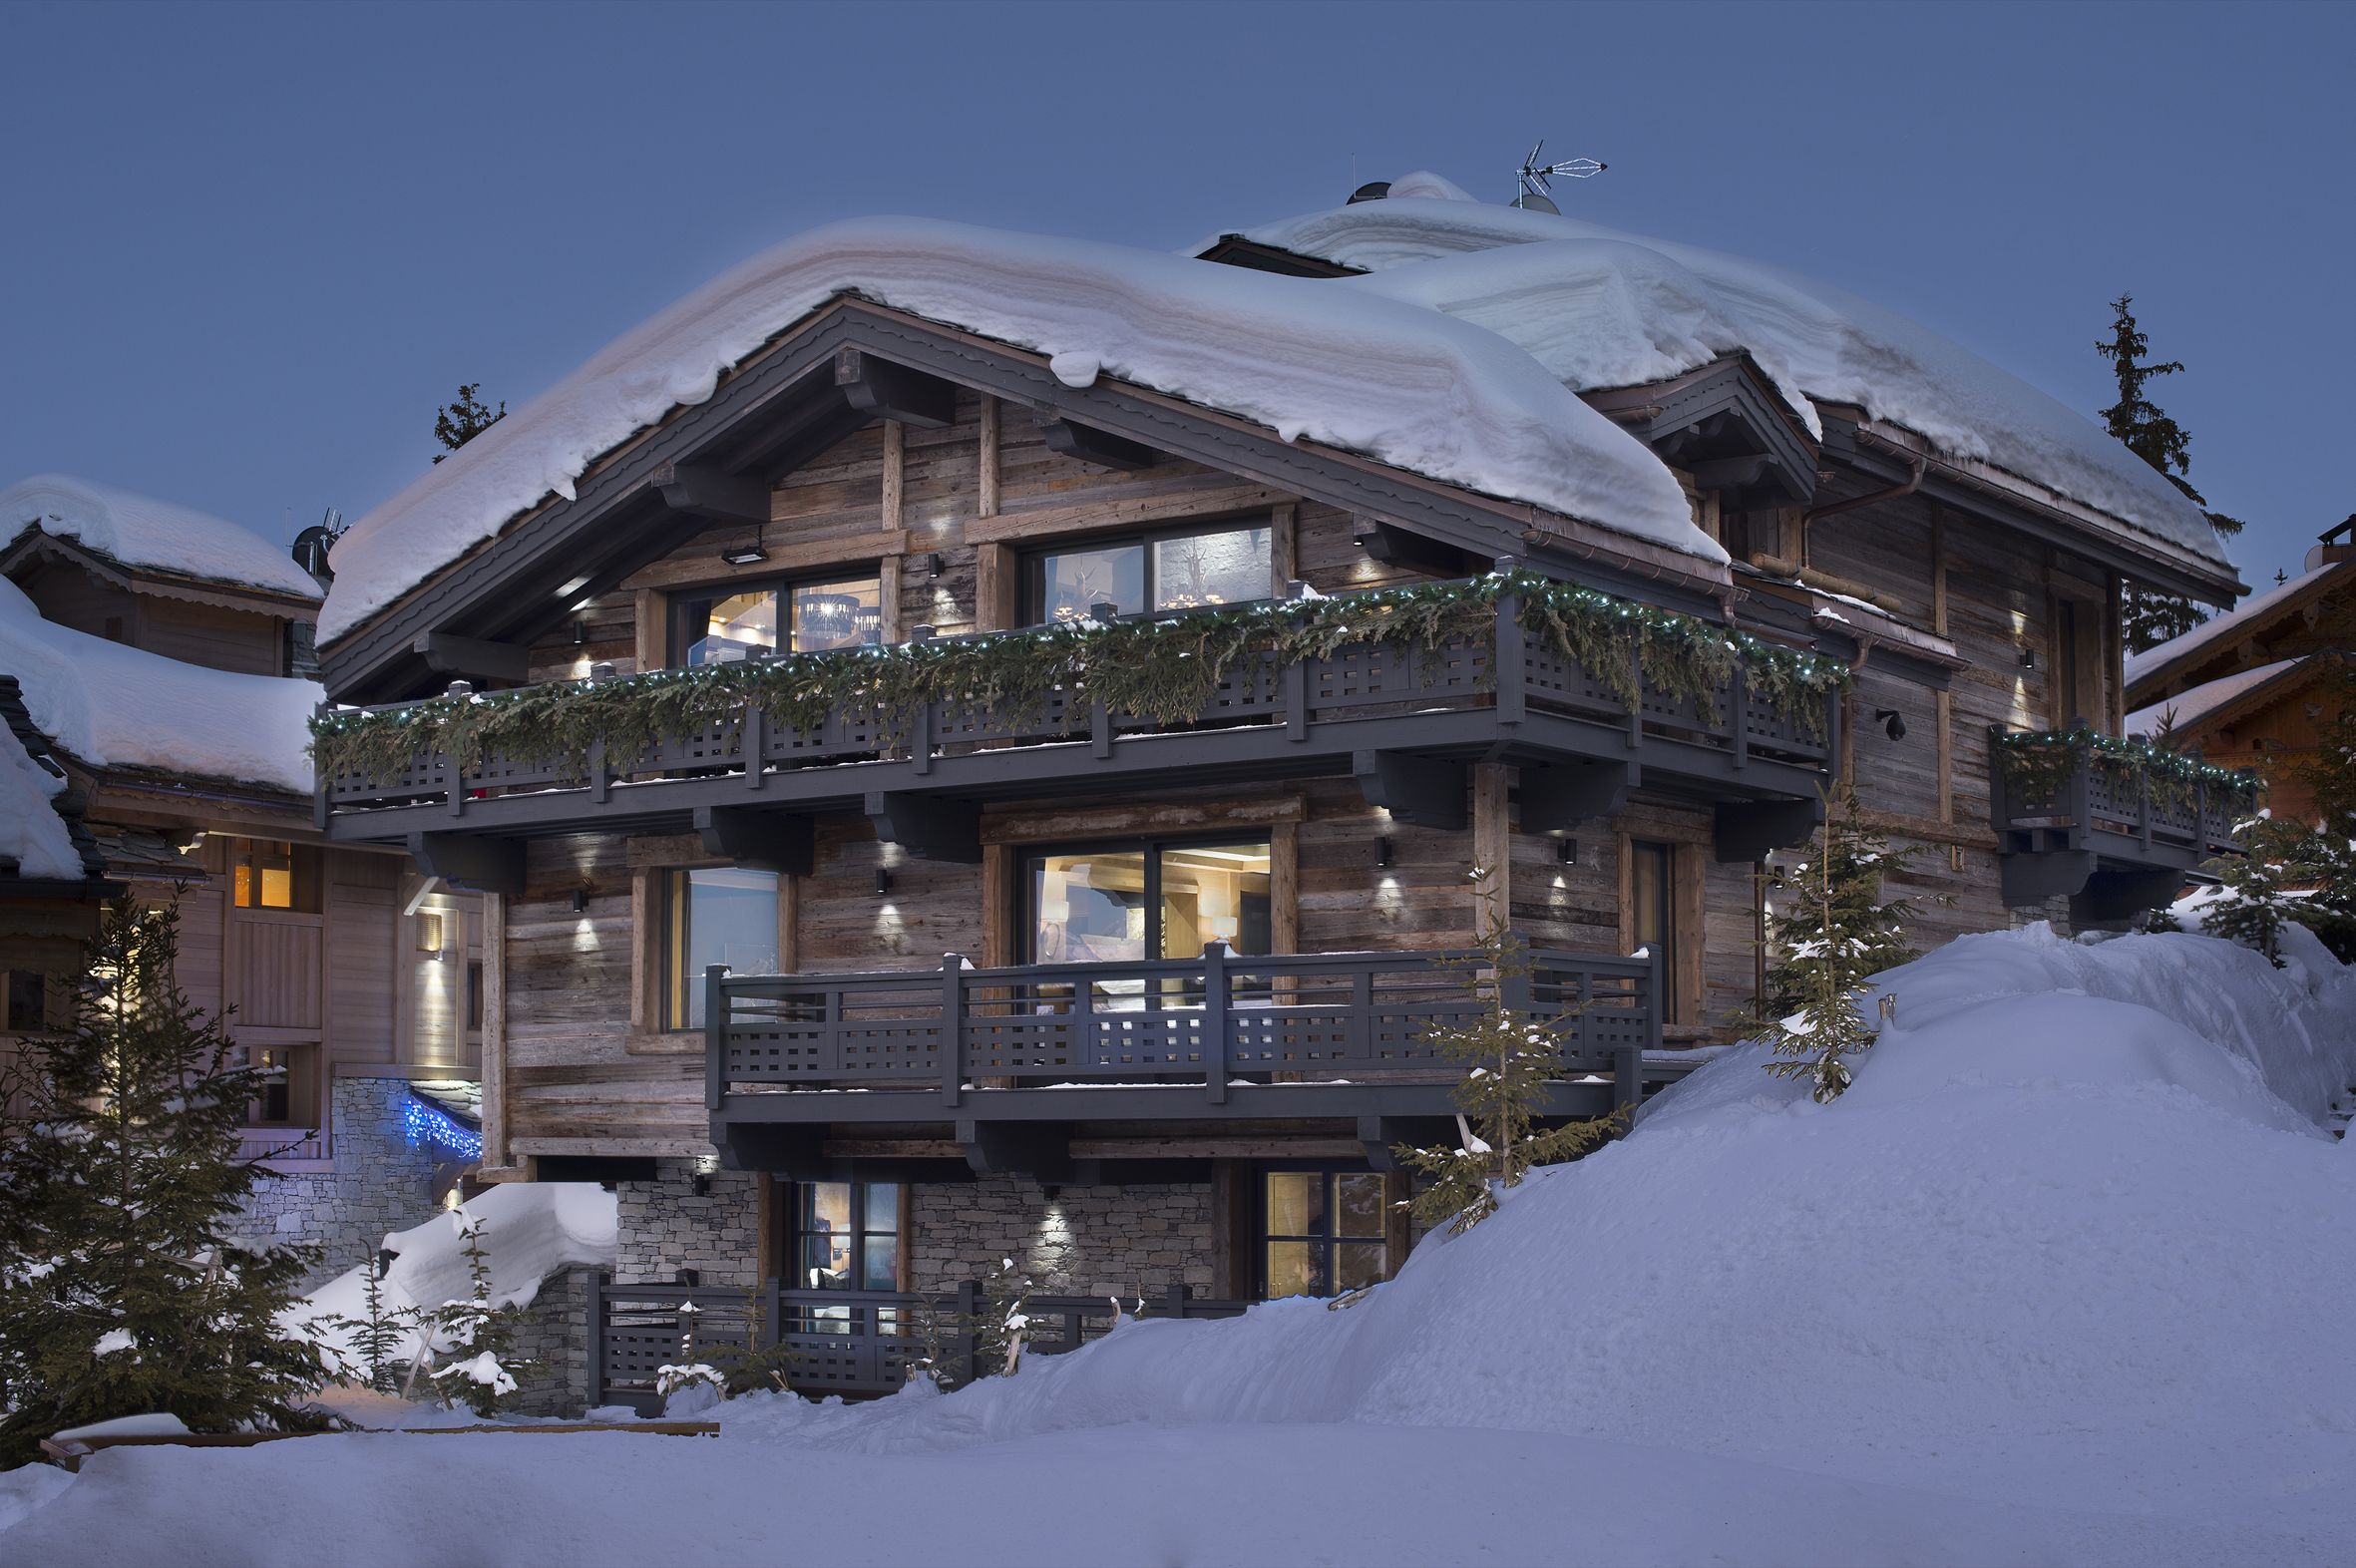 #Chalet in #Courchevel1850 - #FrenchAlps This 1500m²luxury chalet, consists of 7 en suite bedrooms.